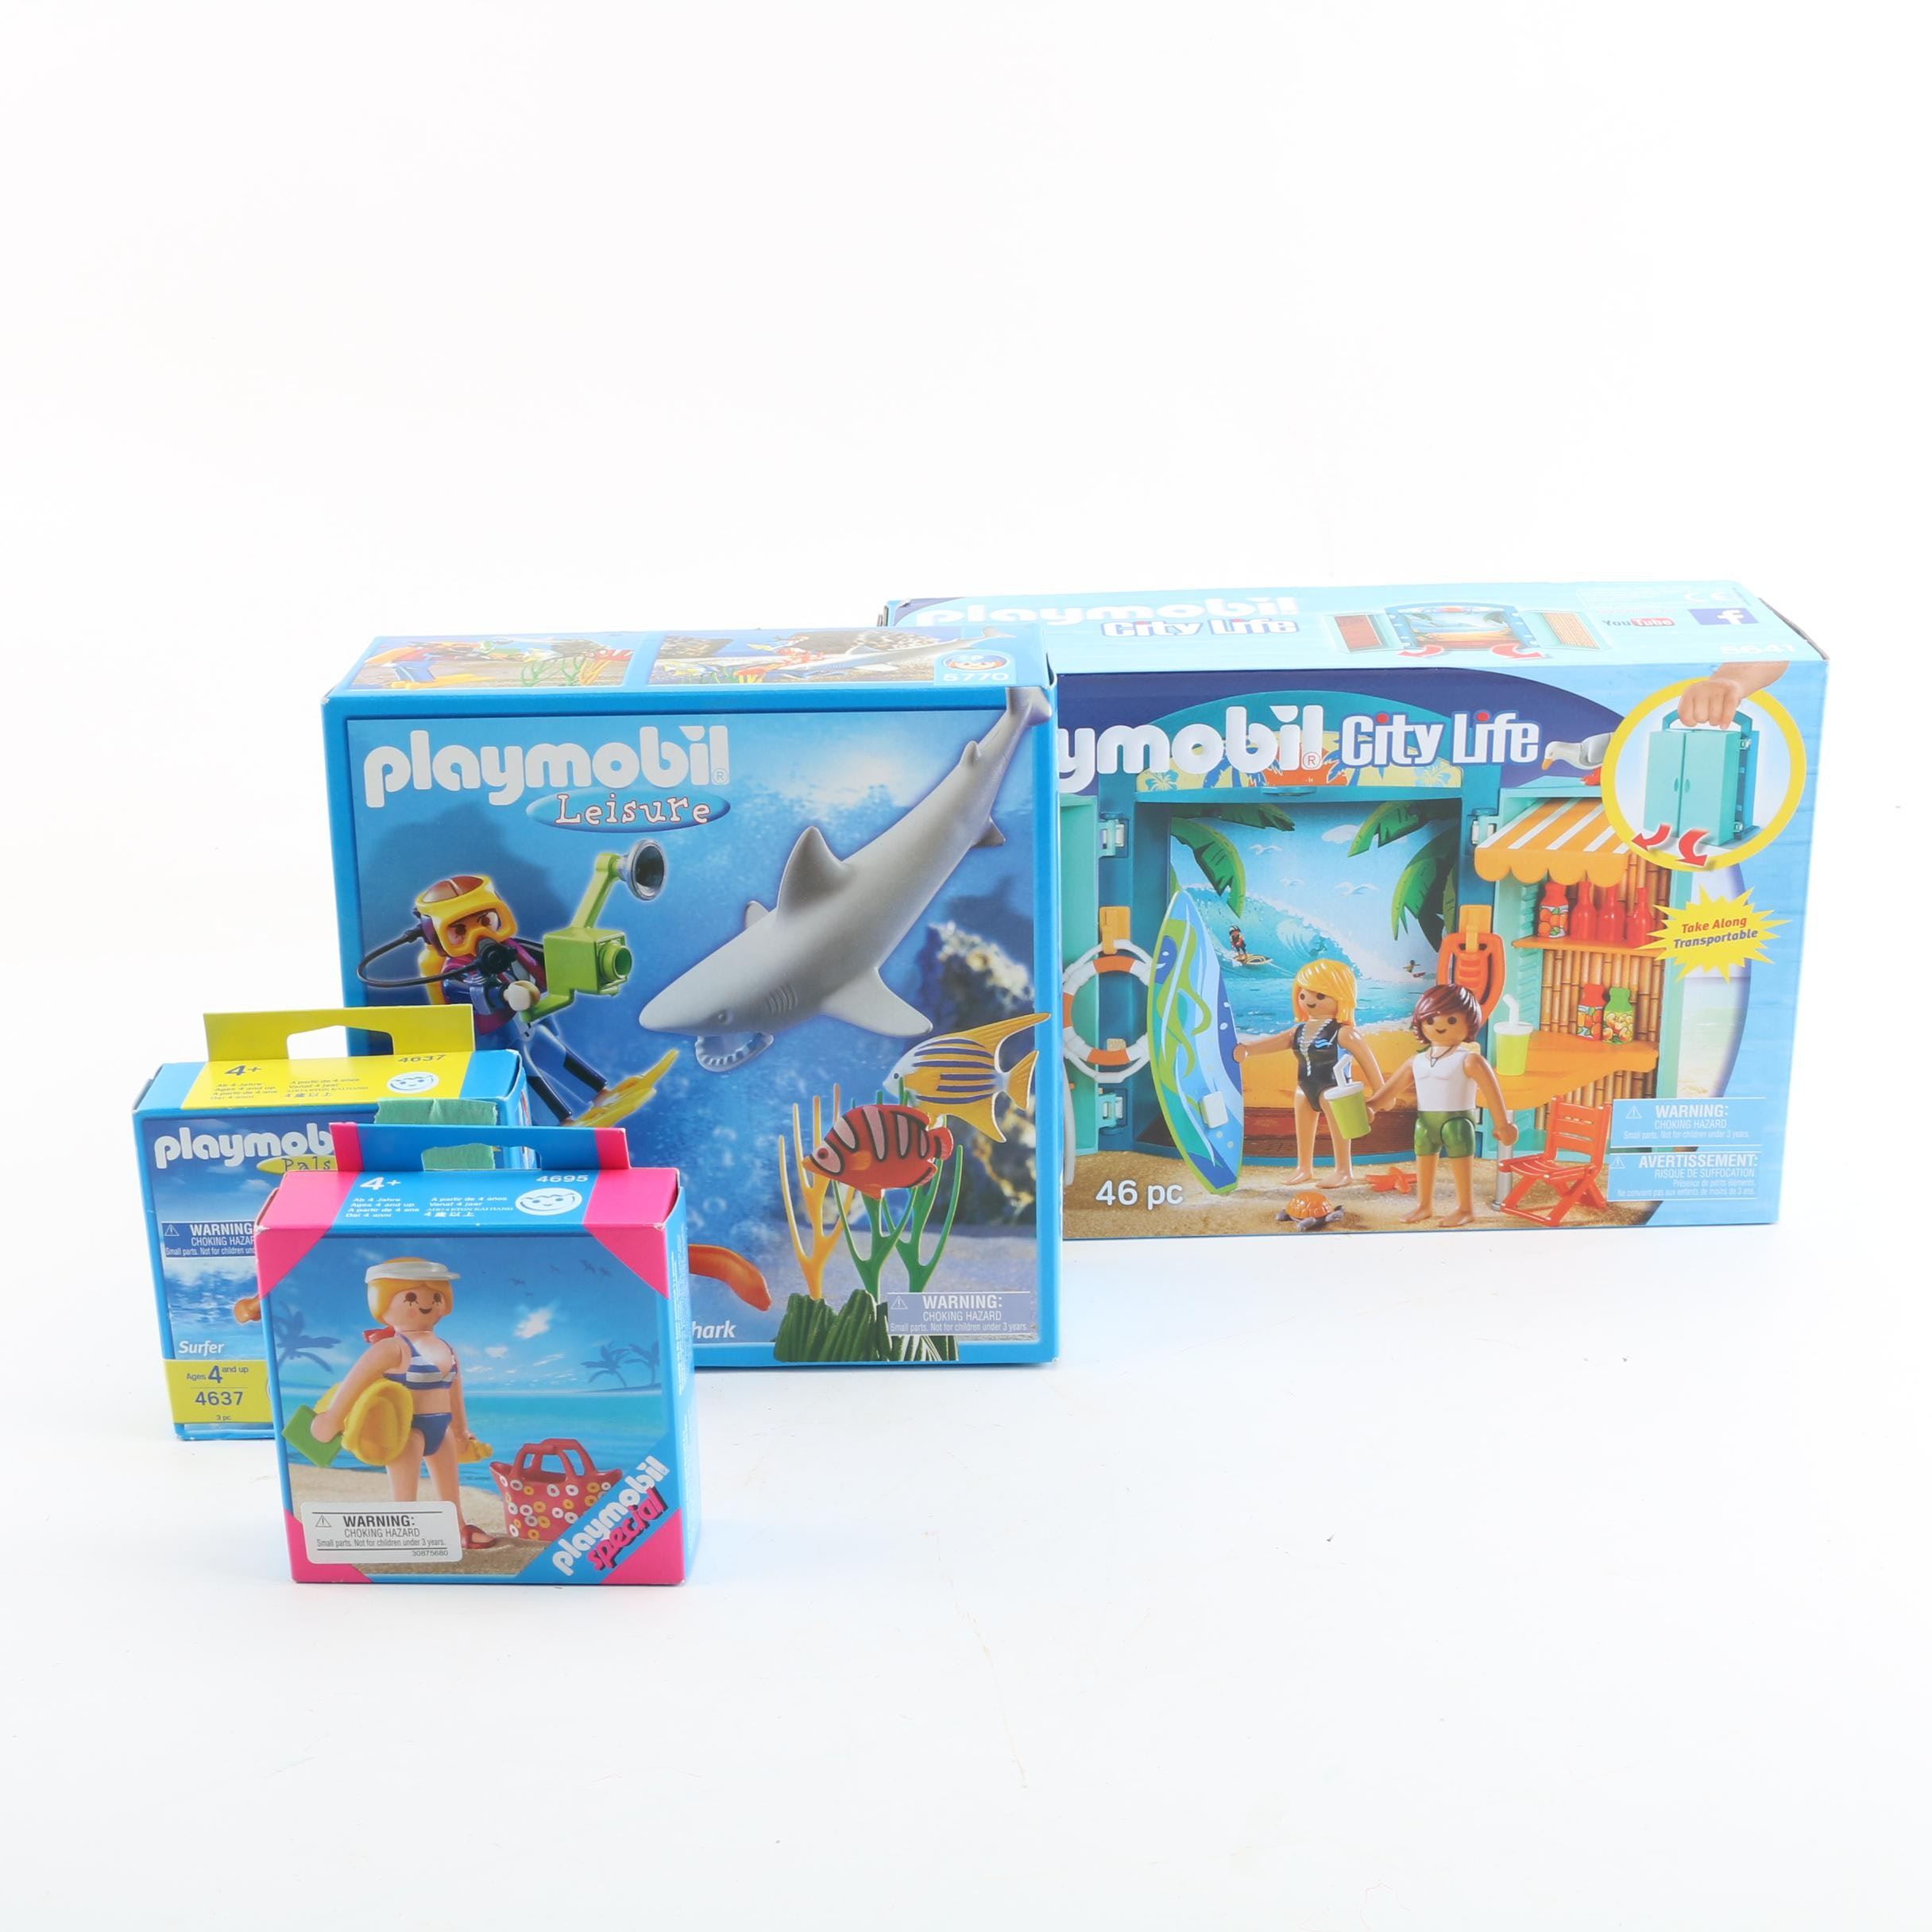 Playmobil Summer Themed Play Sets